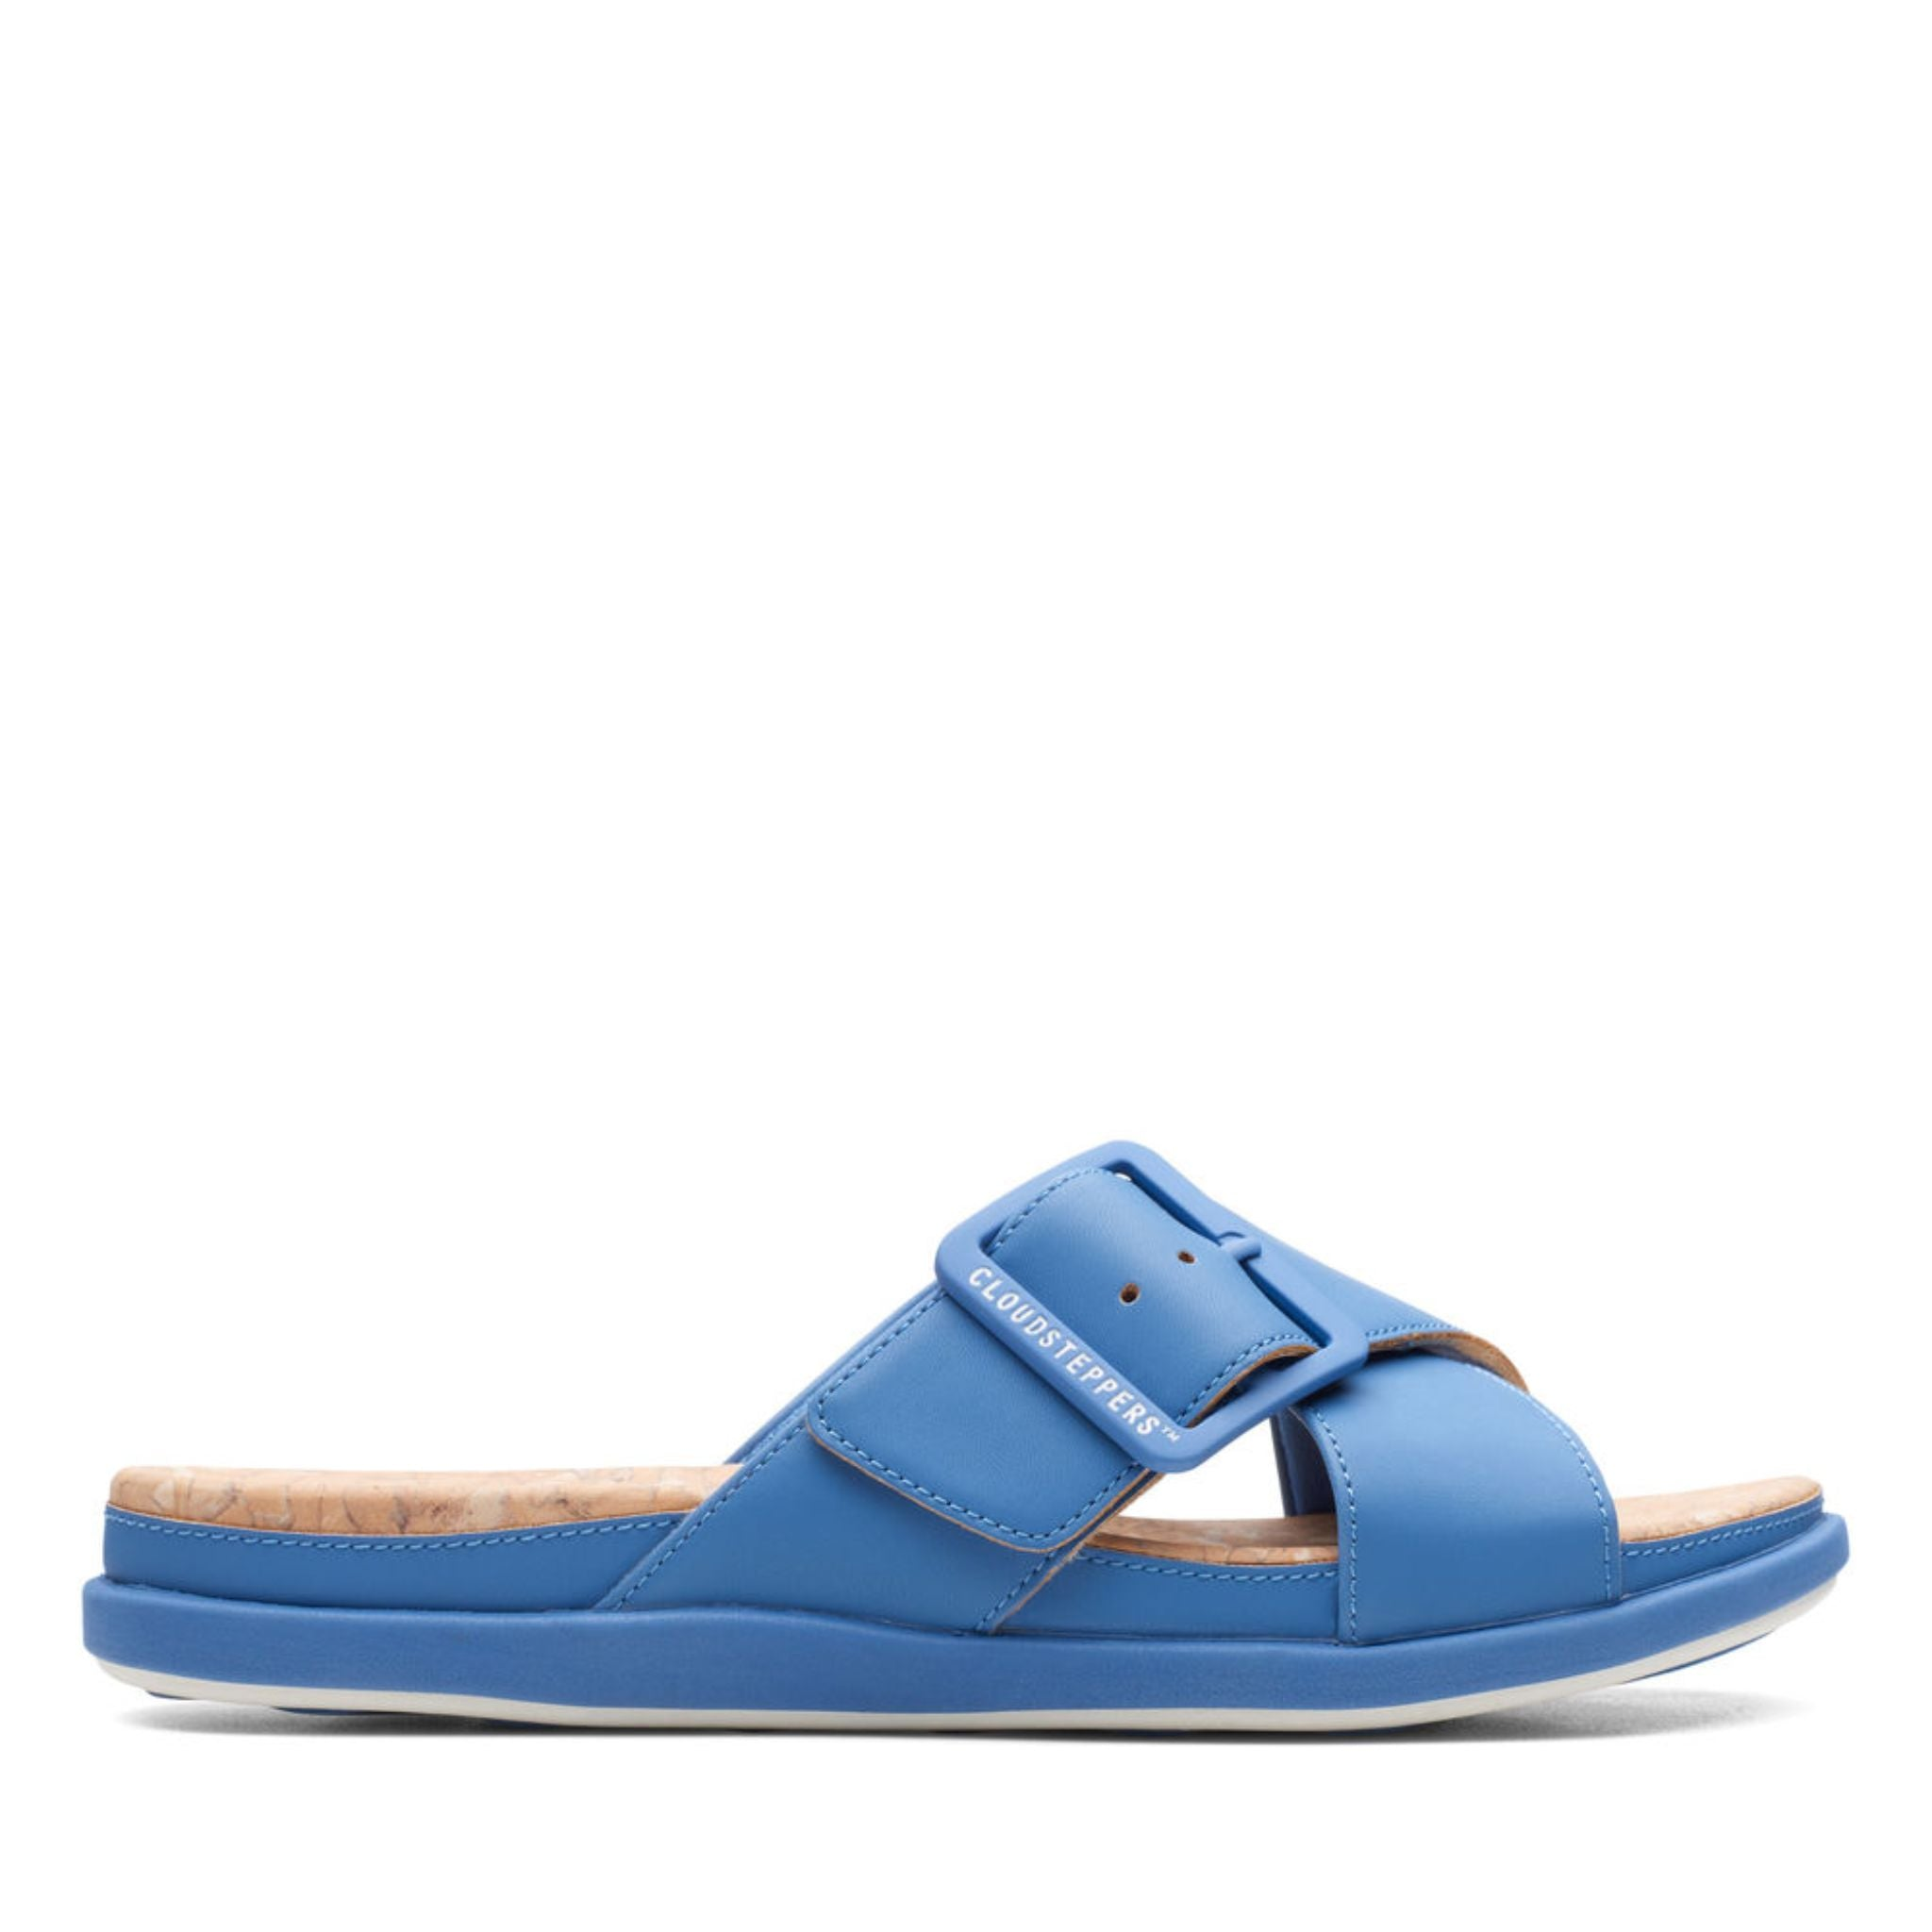 Clarks Cloudstepper Step June Shell Blue Synthetic